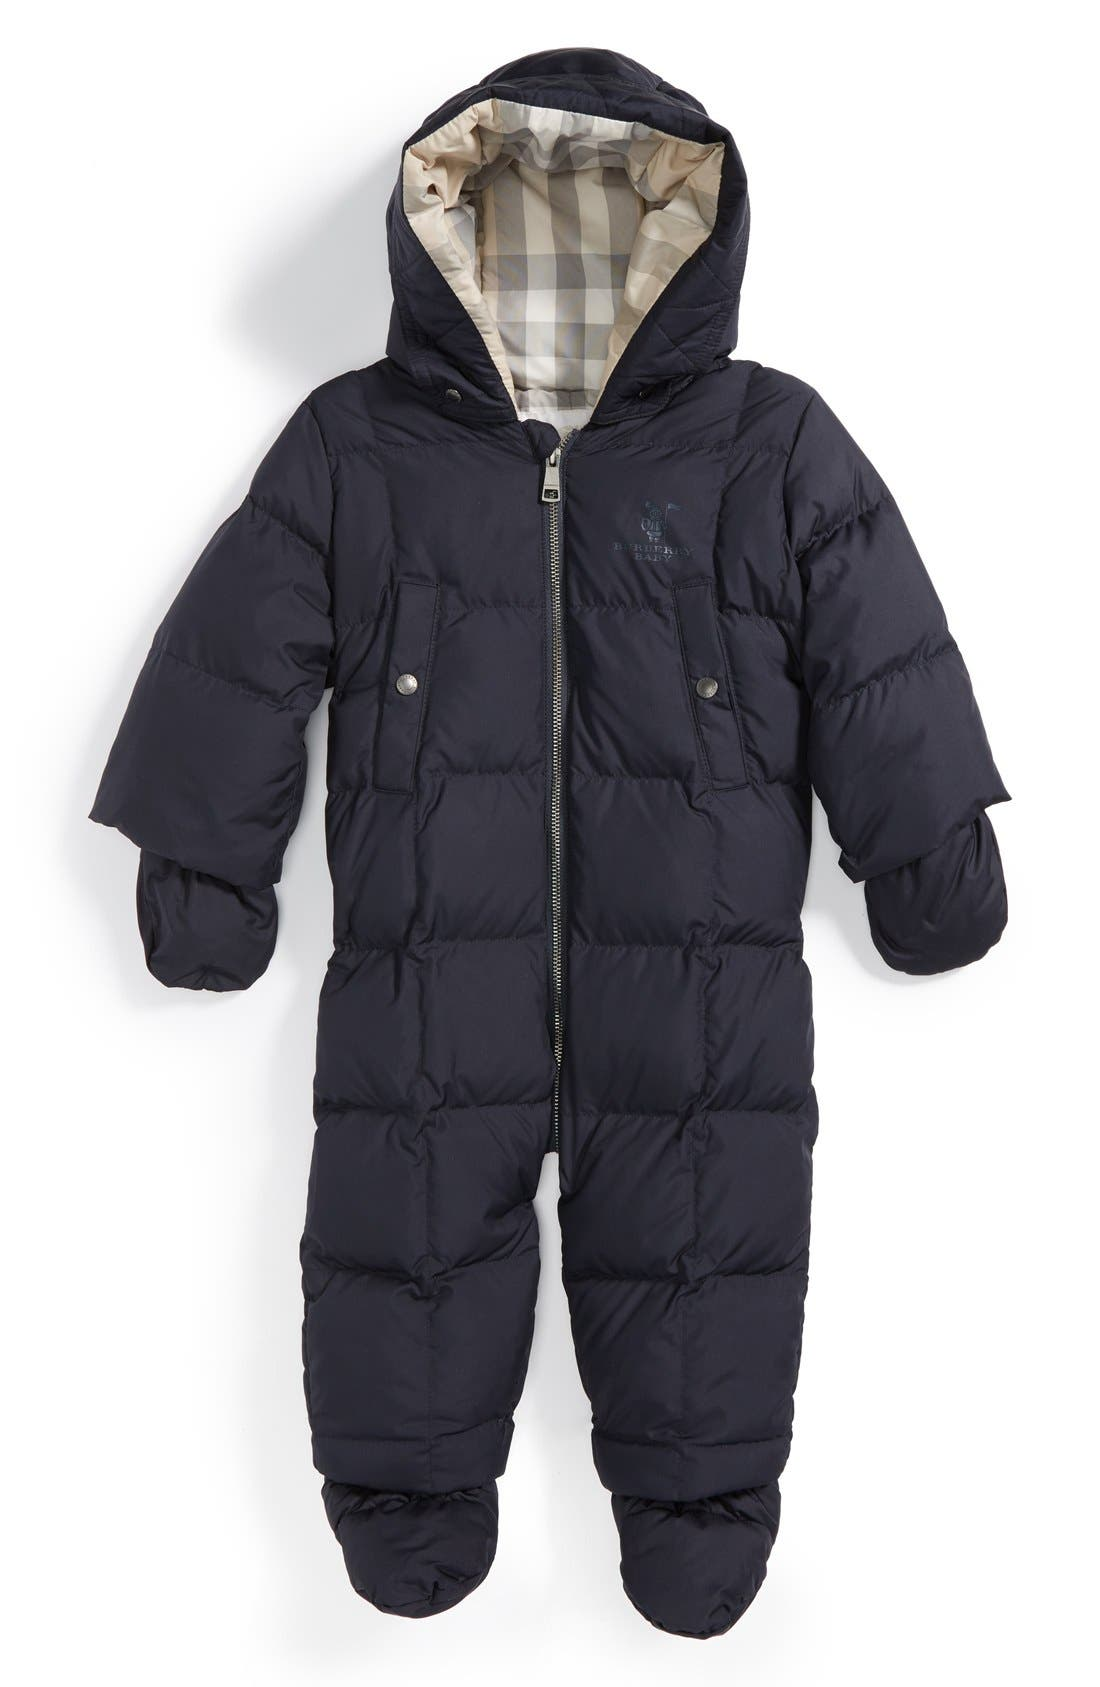 Alternate Image 1 Selected - Burberry Quilted Down Snowsuit (Baby)